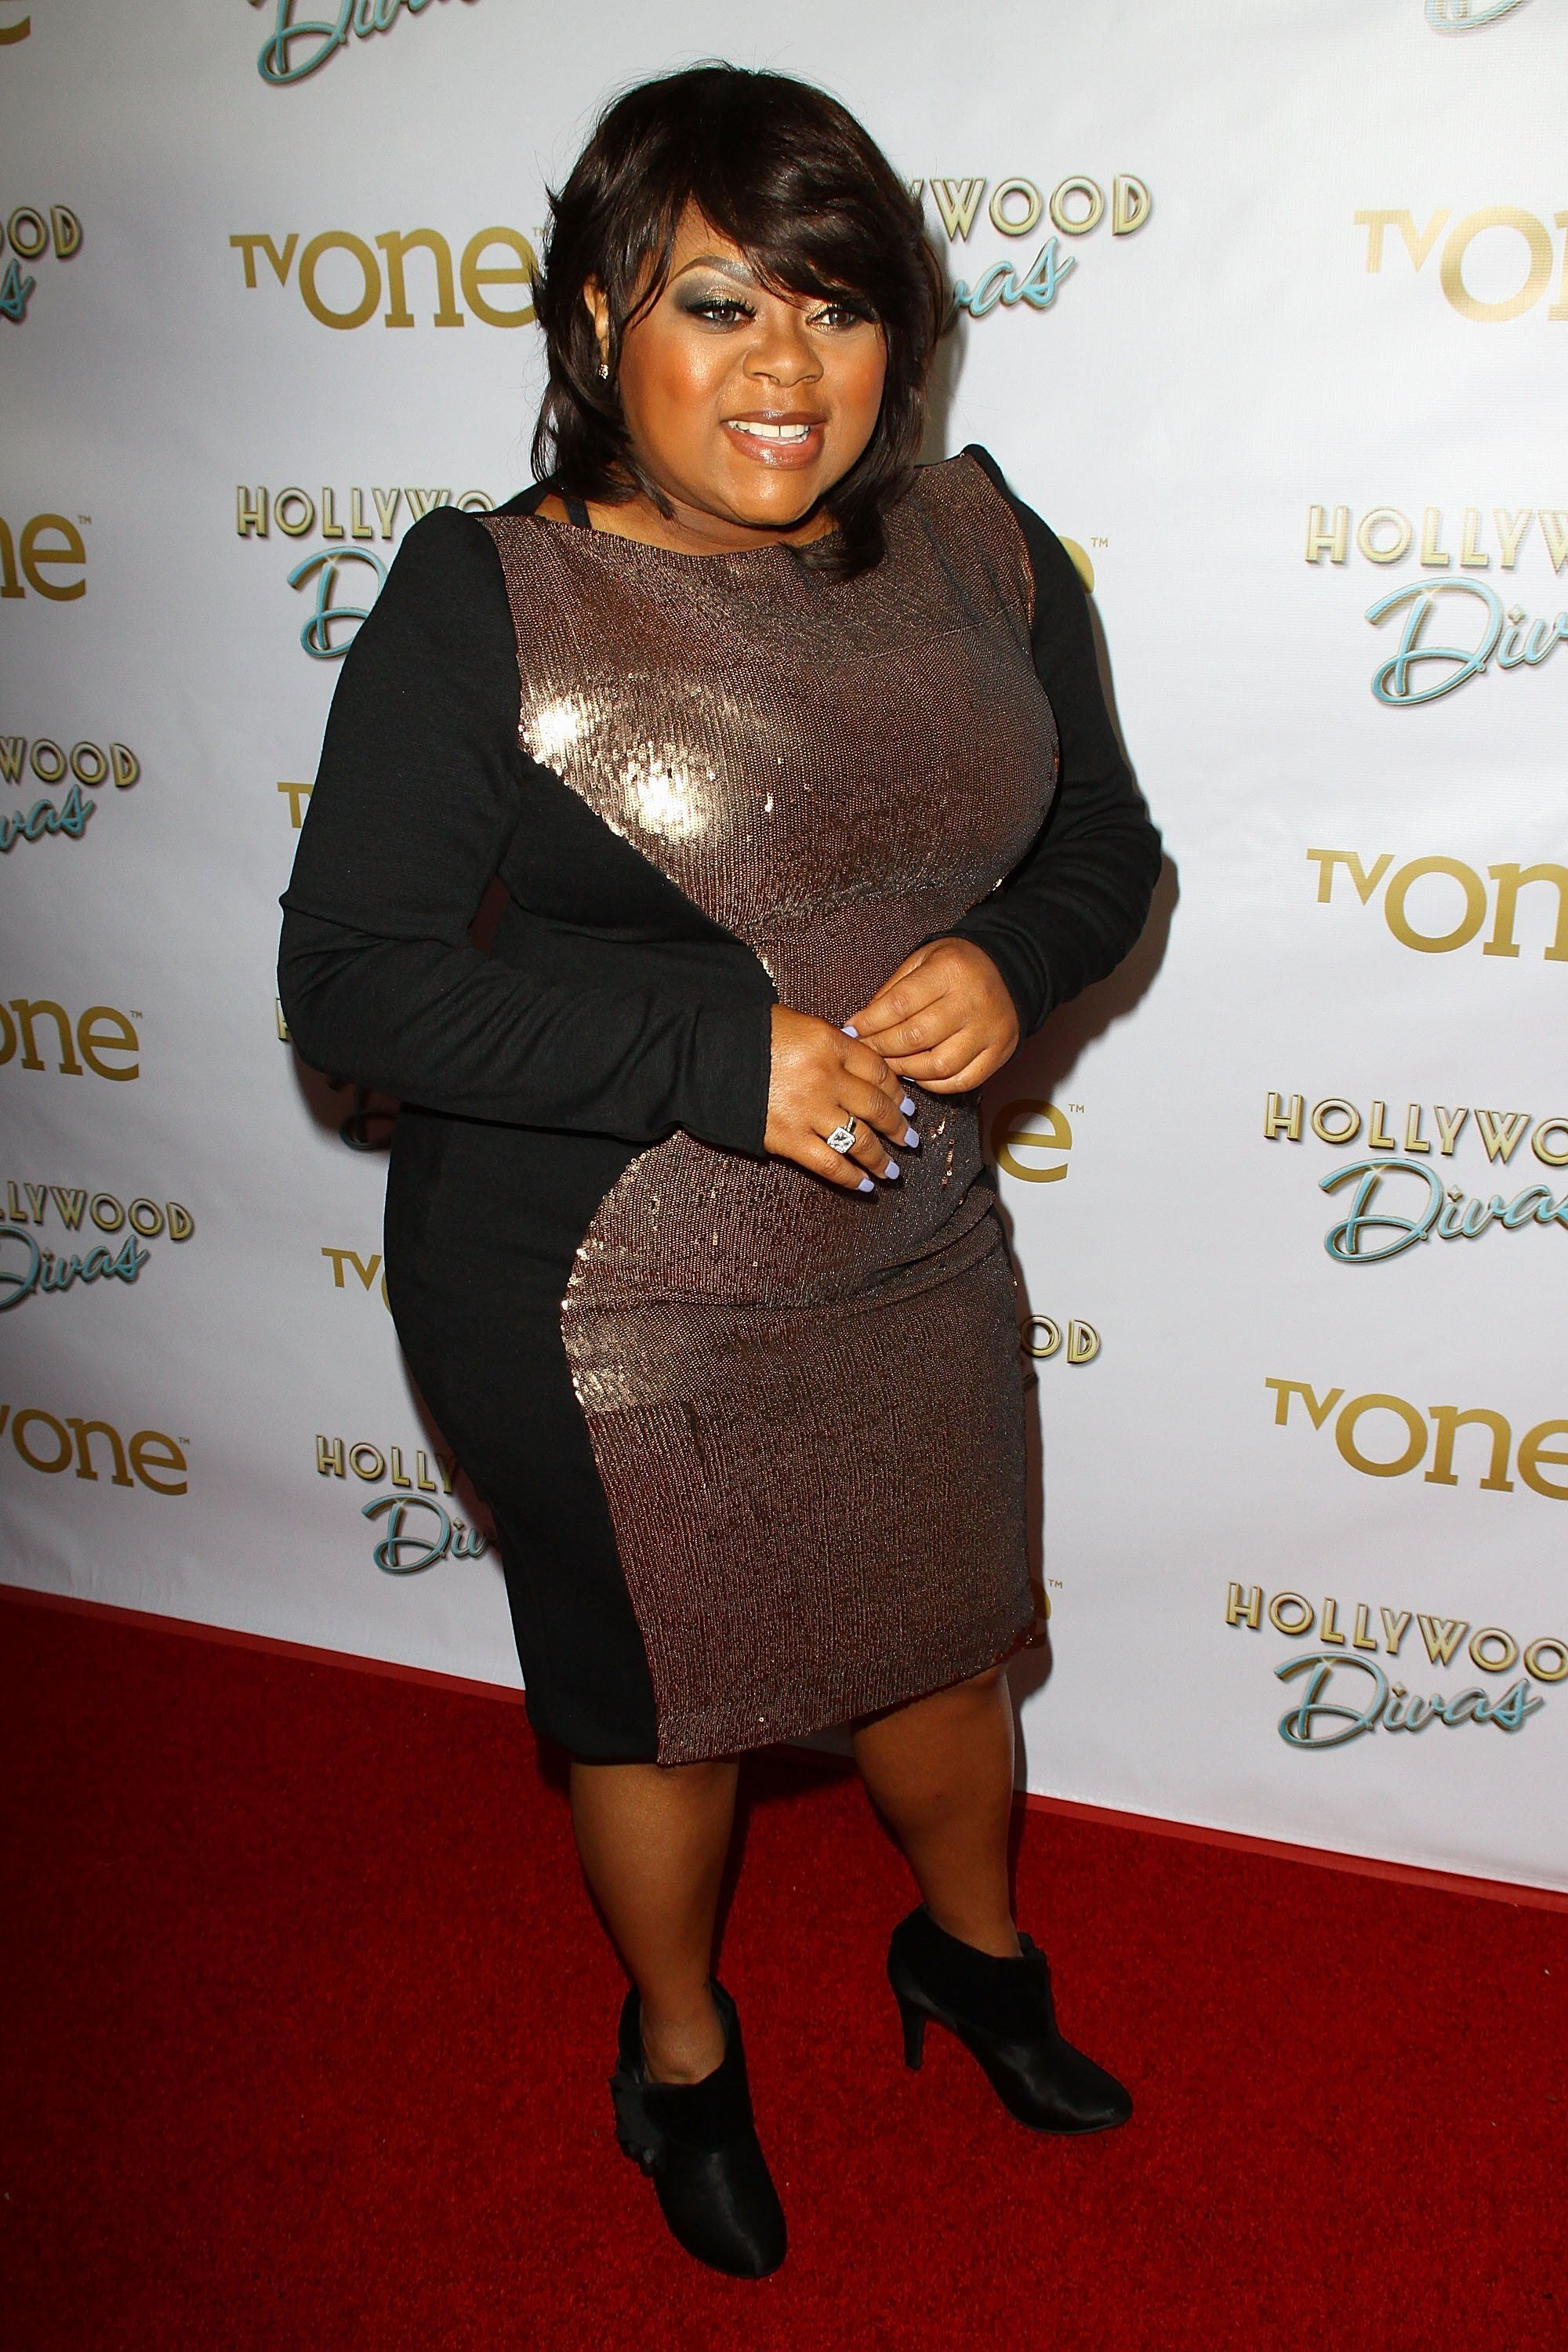 Countess Vaughn at the premiere party for 'Hollywood Divas' on Oct. 7, 2014 in Hollywood, California | Photo: Getty Images